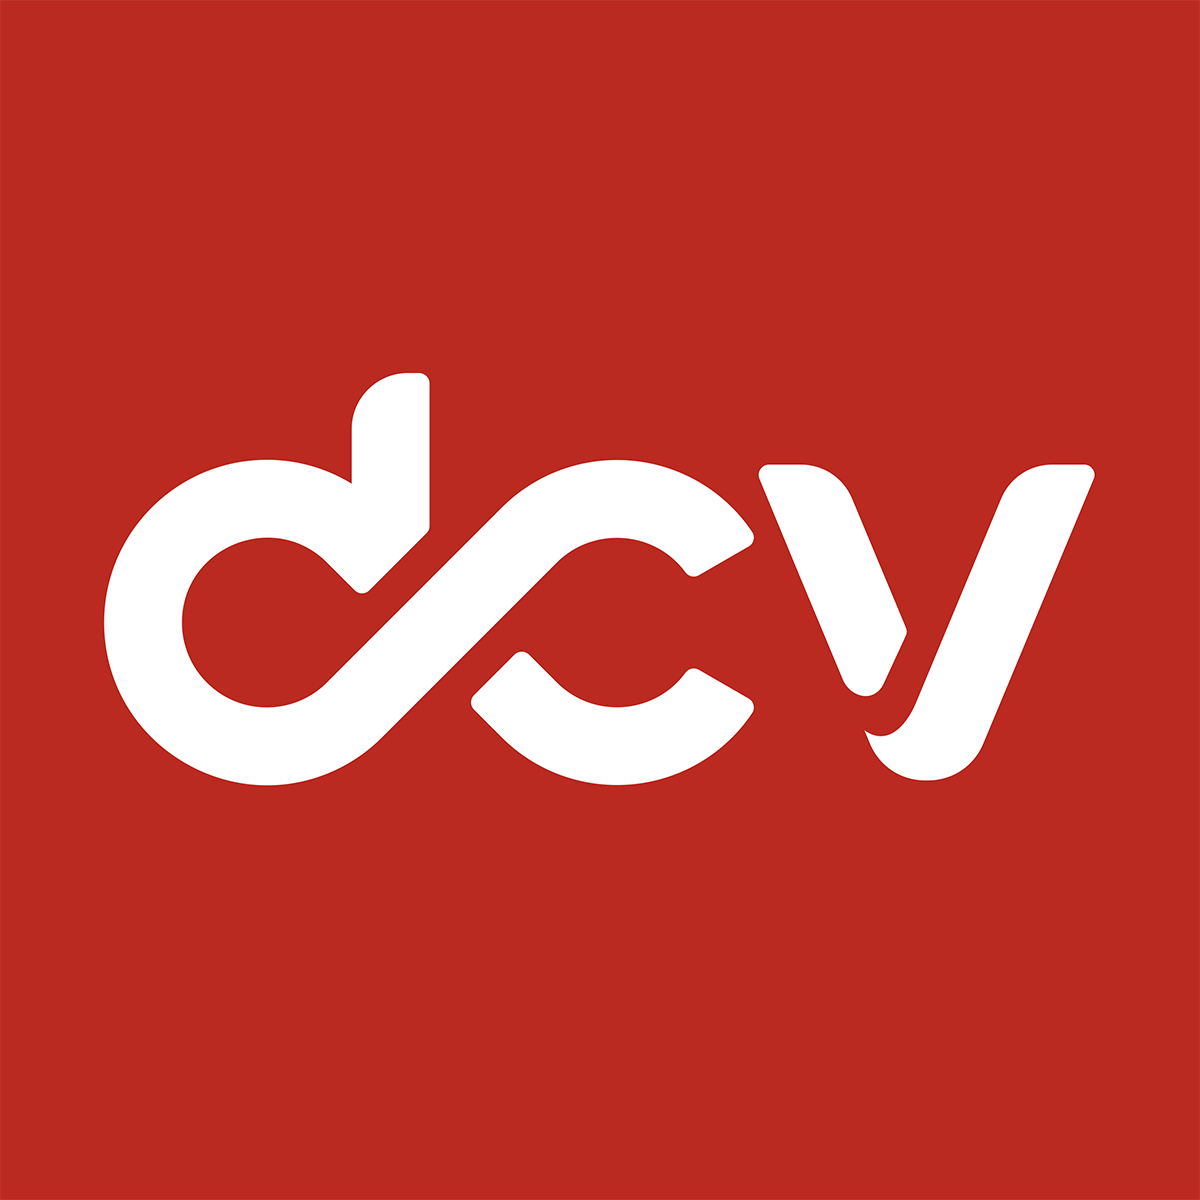 DCV - Digital Creative Visionaries